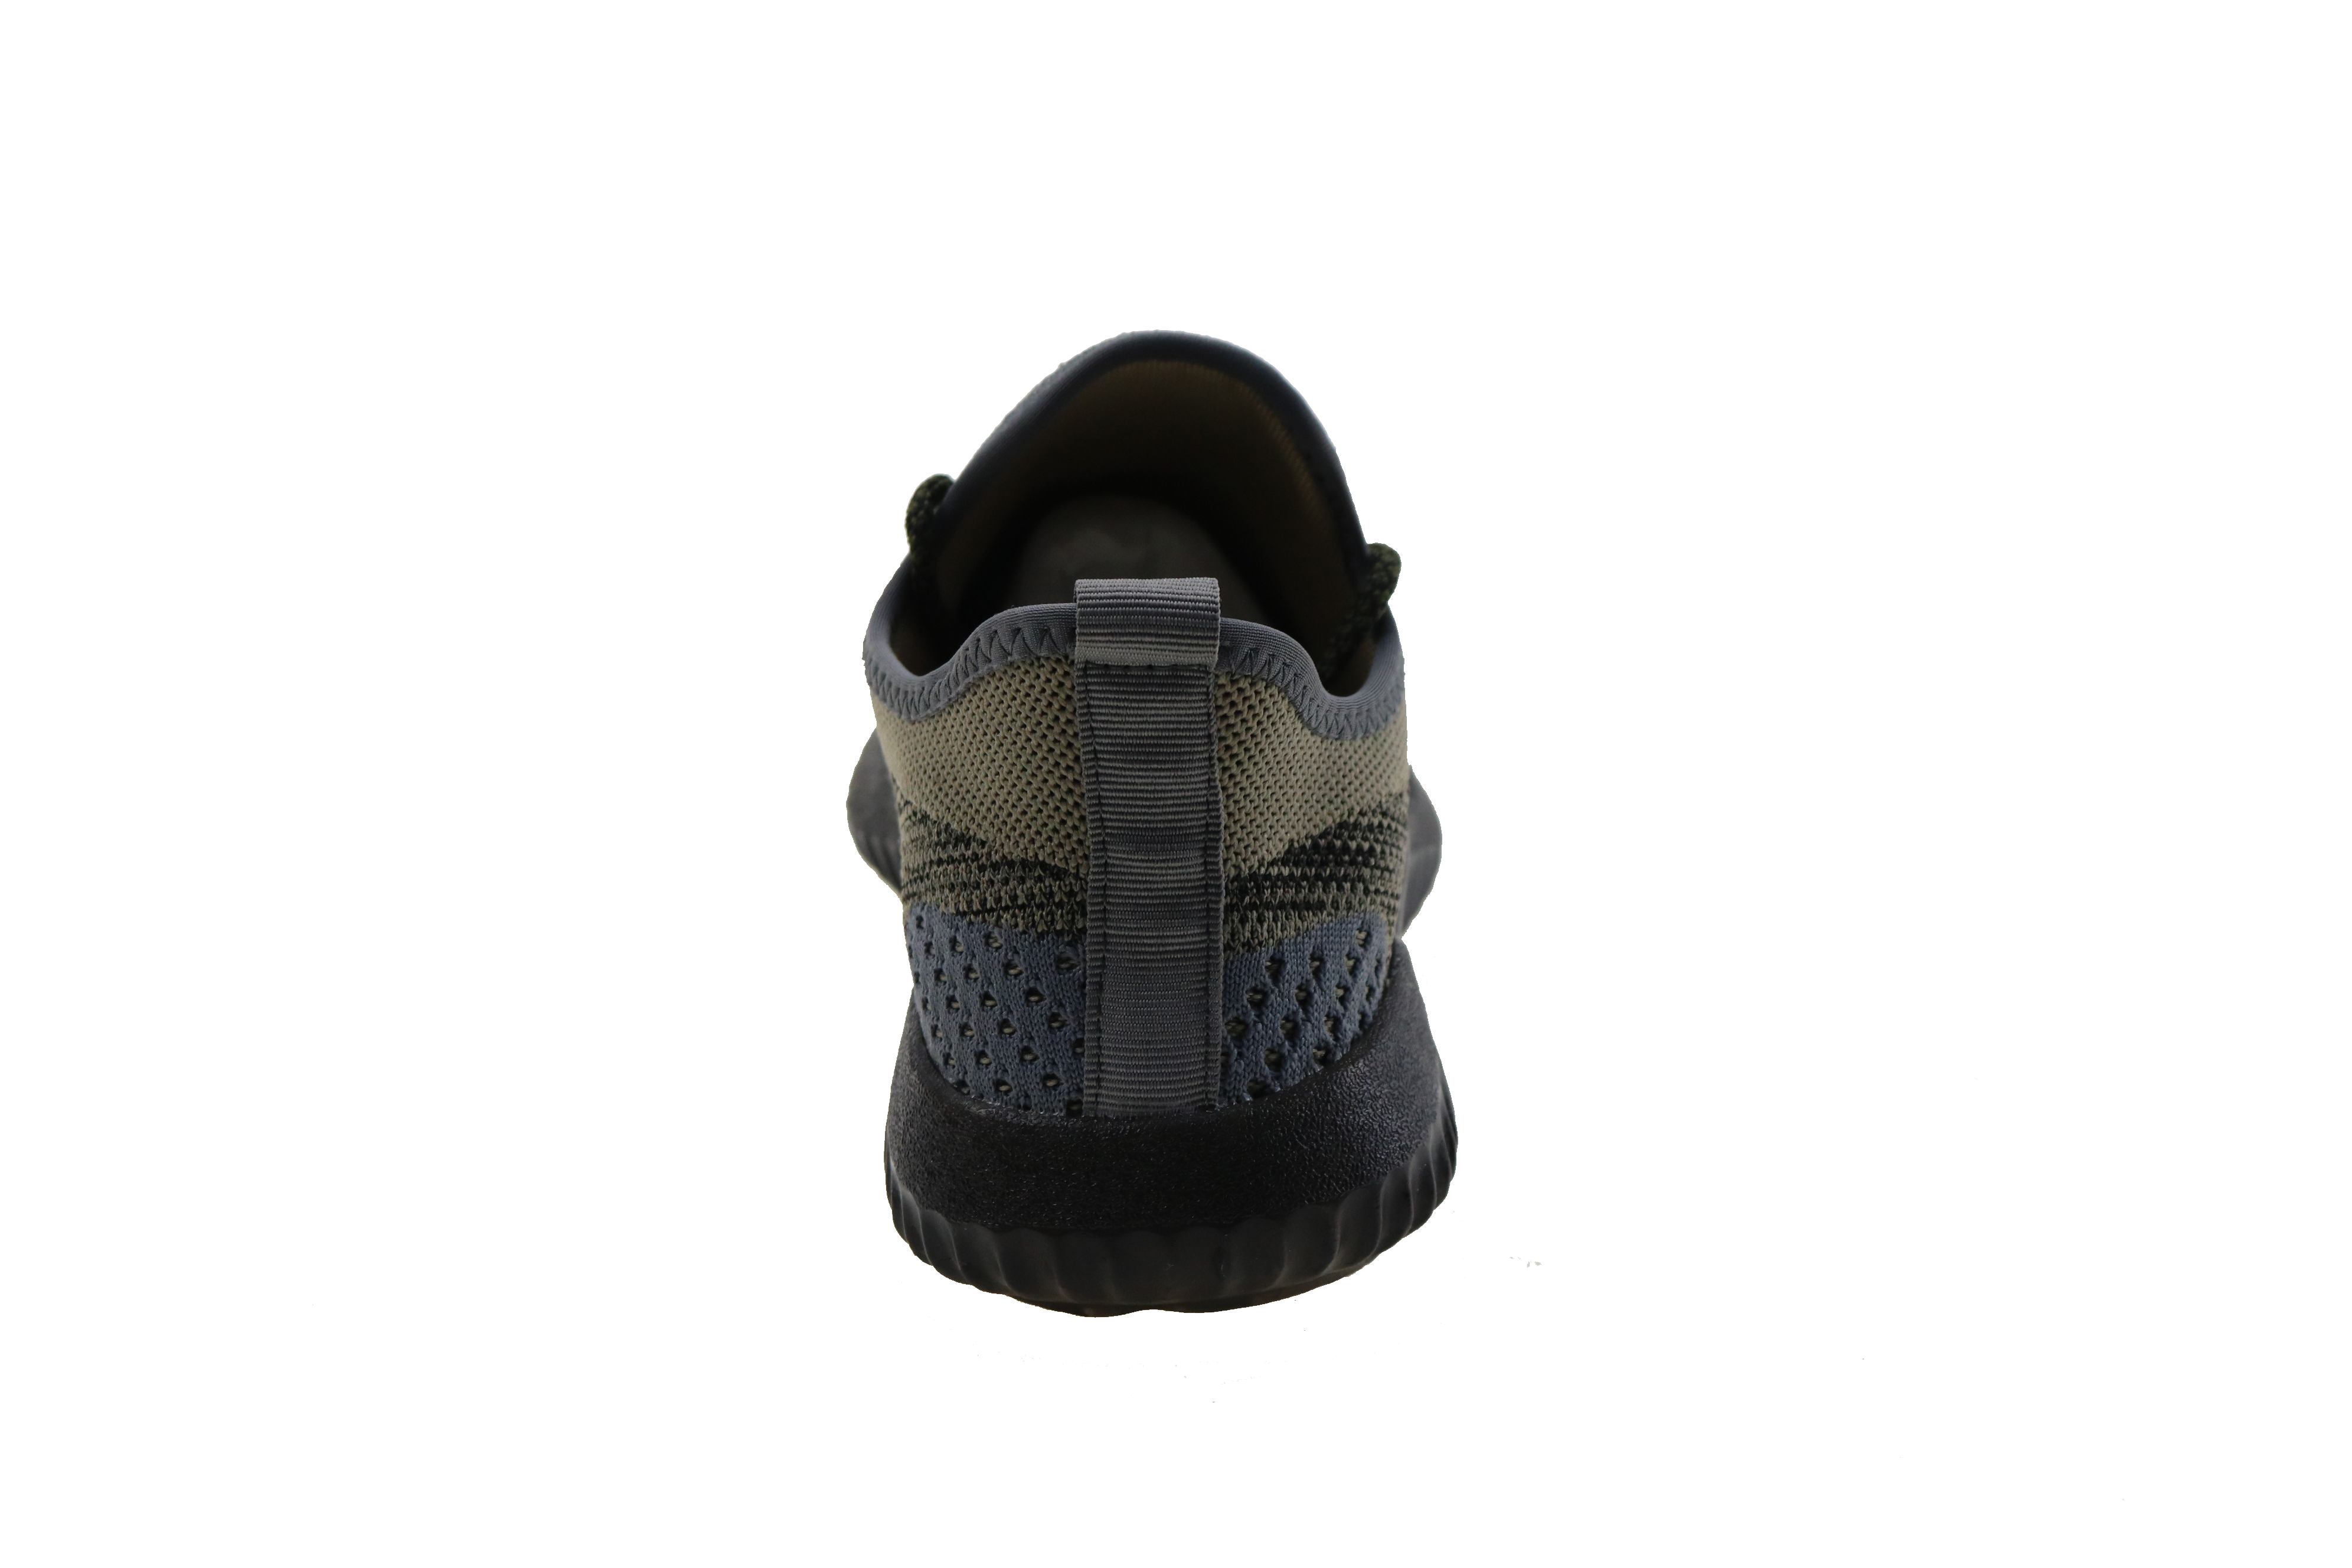 Piercing Resistant Work Shoes Steel Toe  Sport Women And Men Safety Shoes